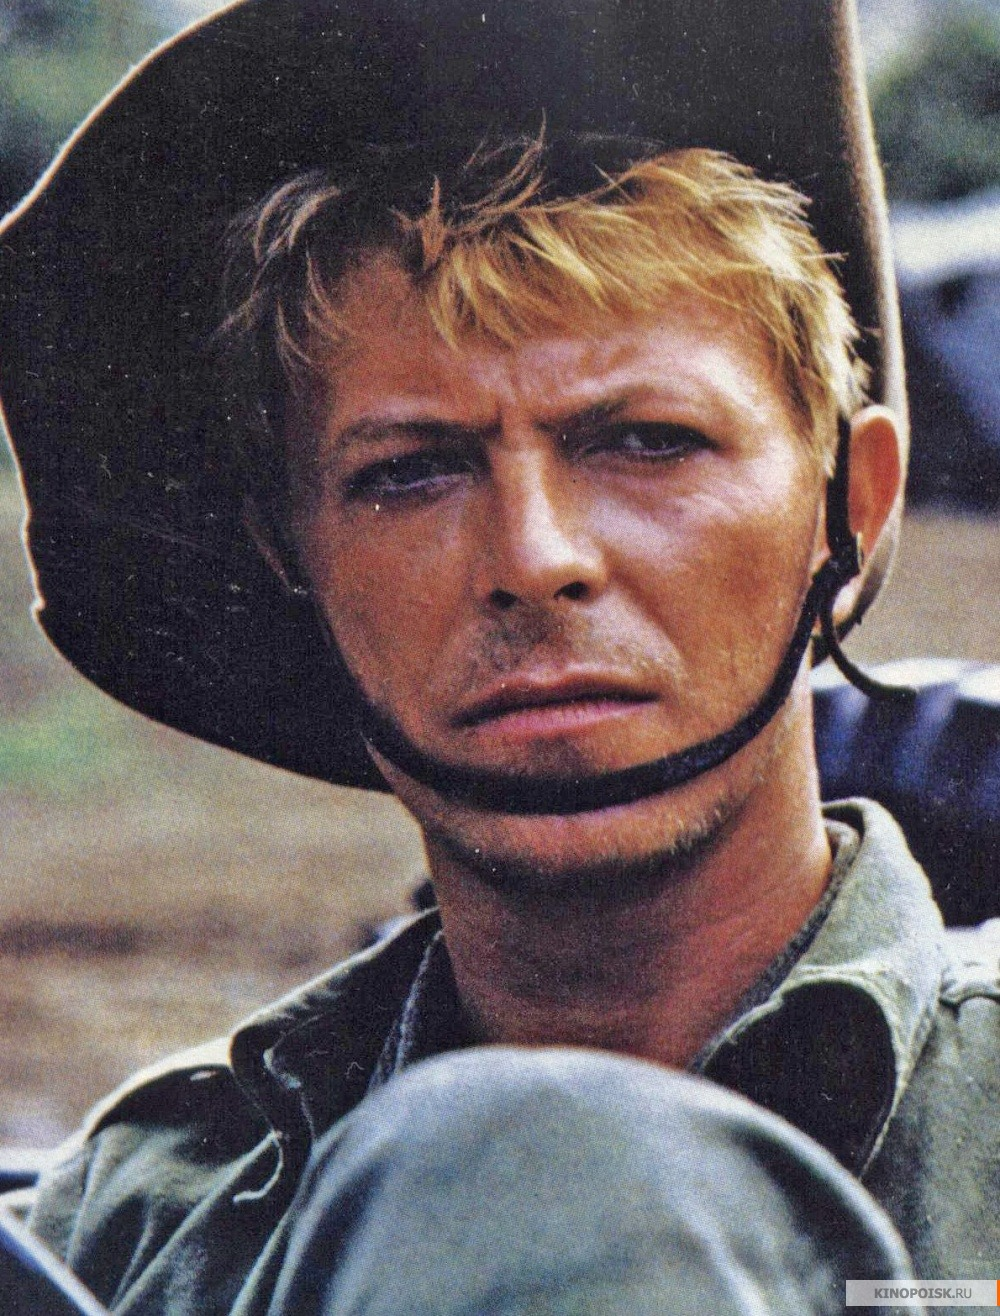 david bowie images merry christmas mr lawrence hd wallpaper and background photos - David Bowie Christmas